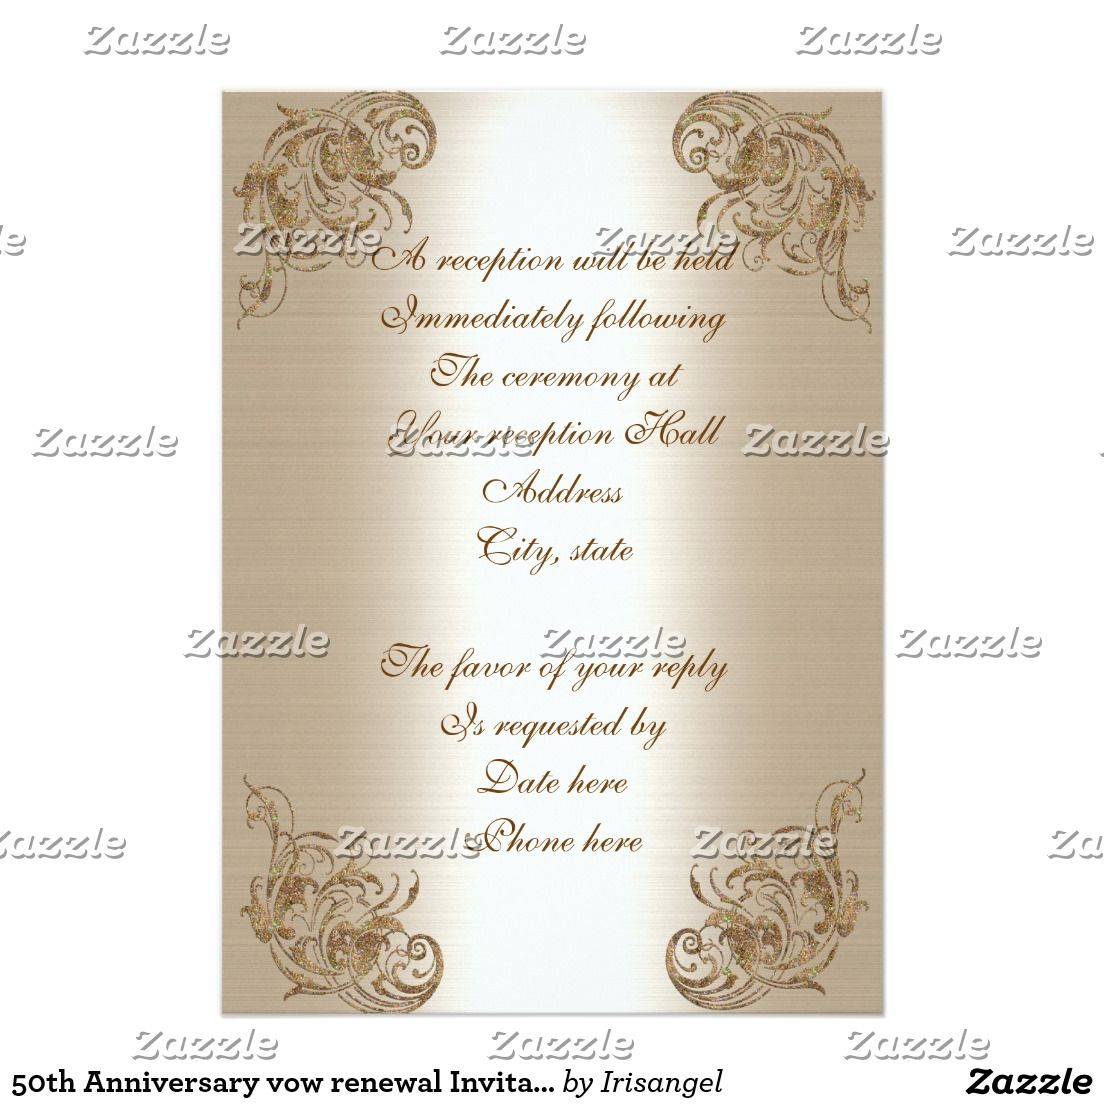 50th Anniversary vow renewal Invitation Vow